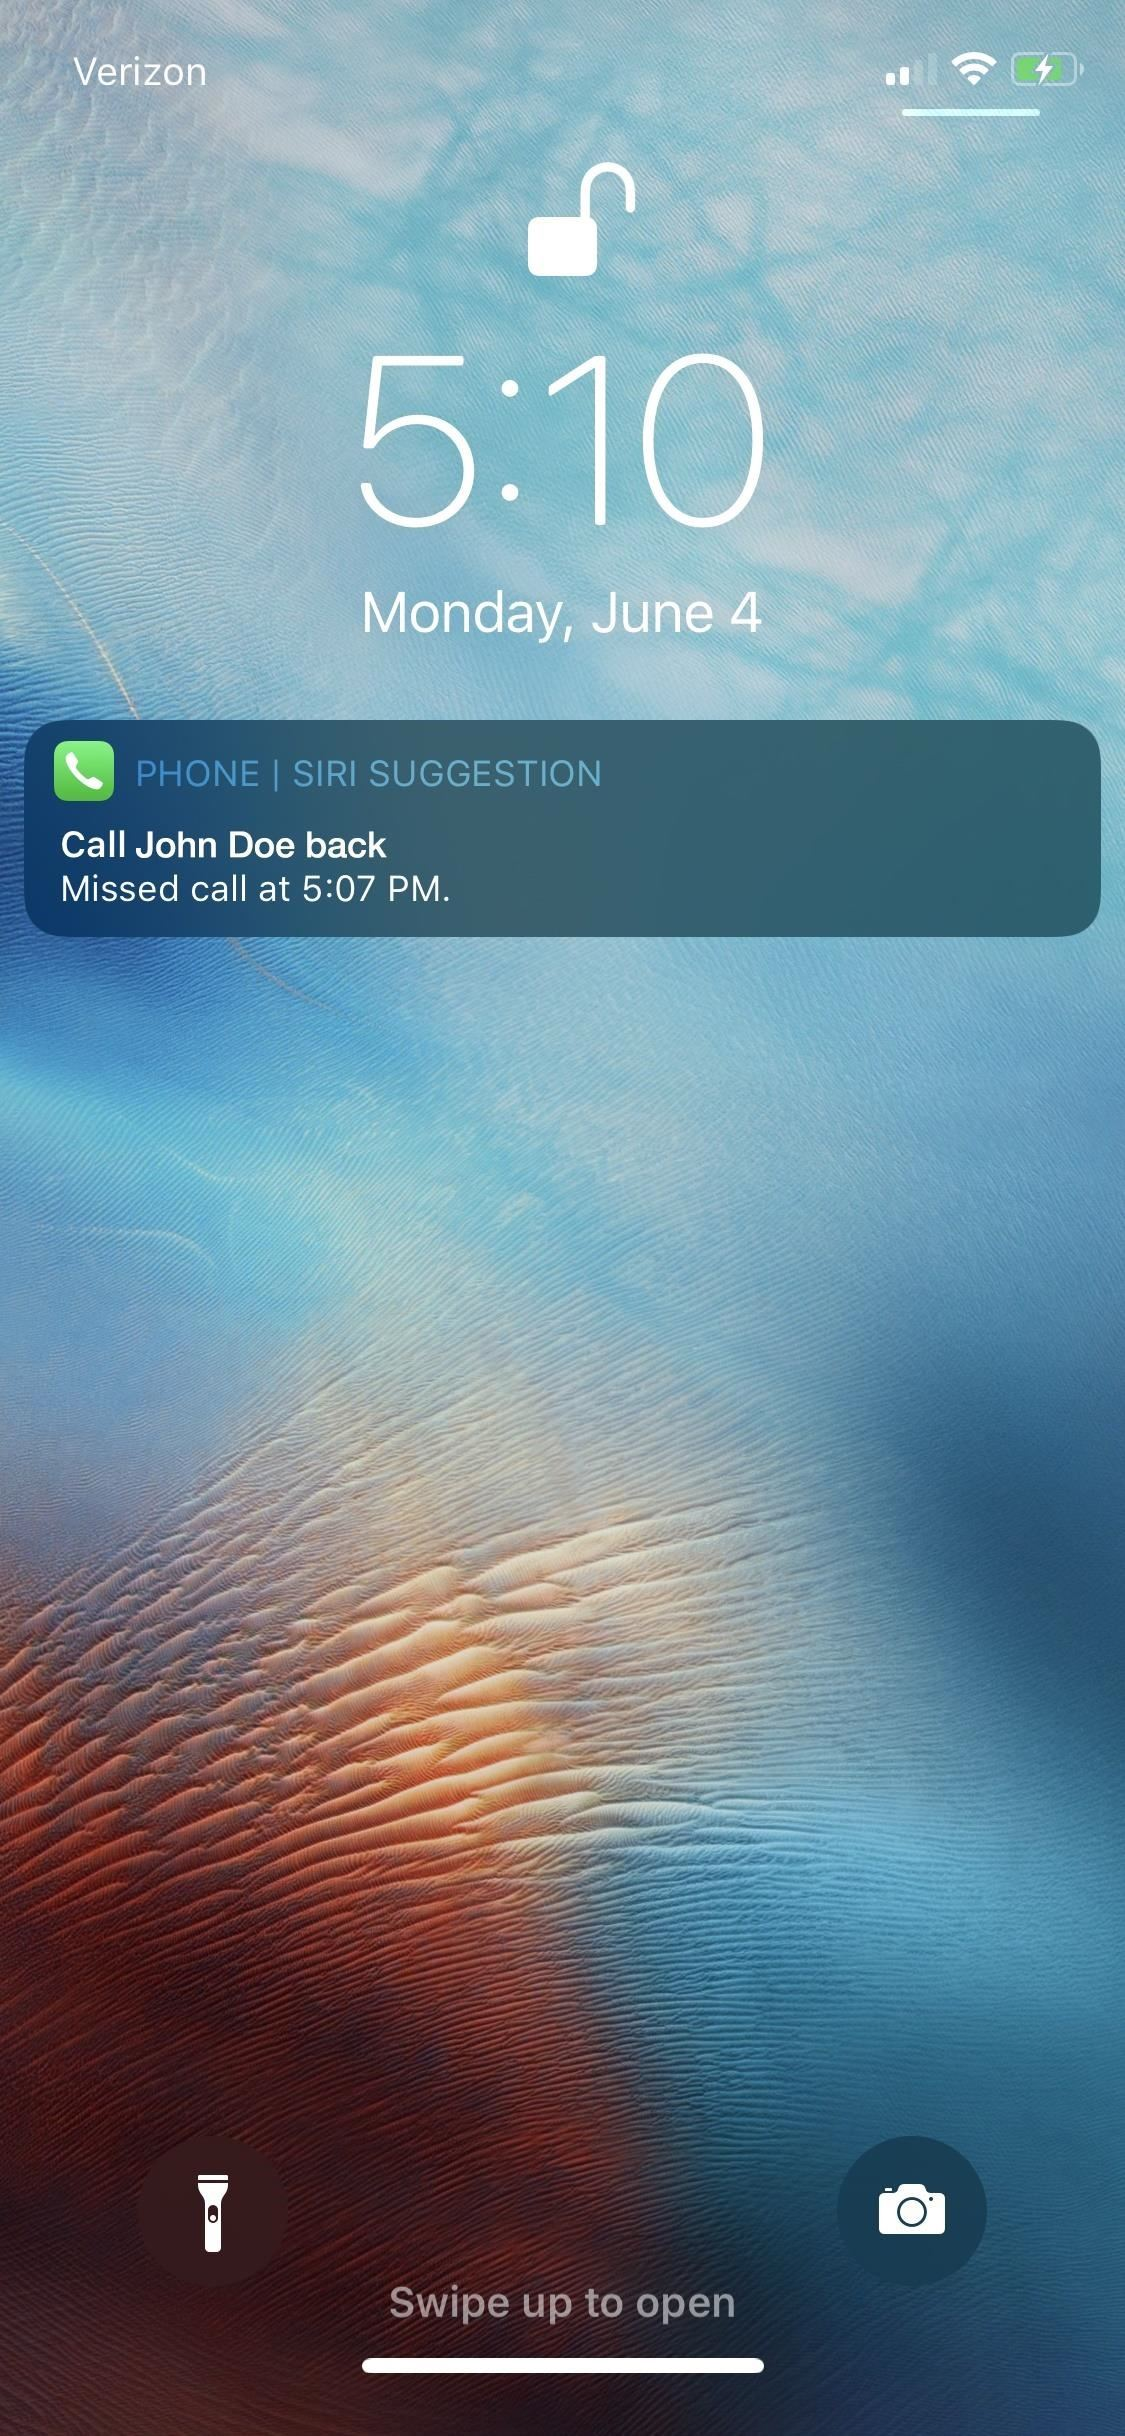 How to Create Your Own Shortcuts in iOS 12 to Get Things Done Faster with Siri